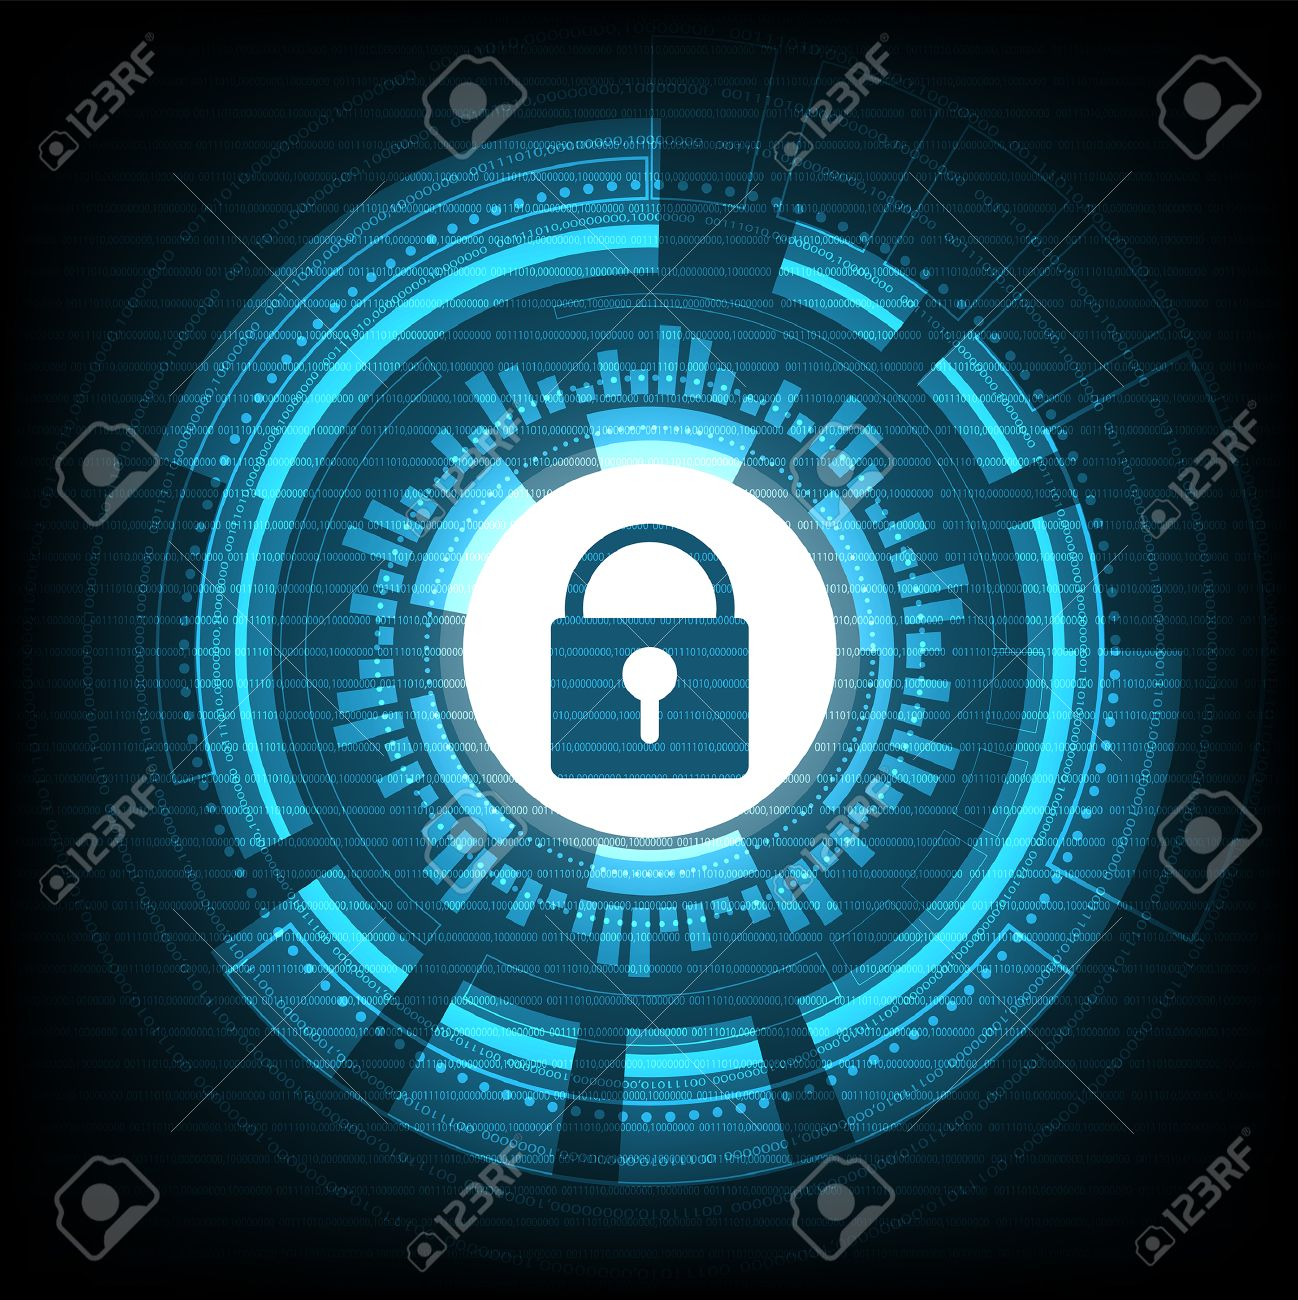 Web Security Clipart Cyberspace-Web Security Clipart cyberspace-11